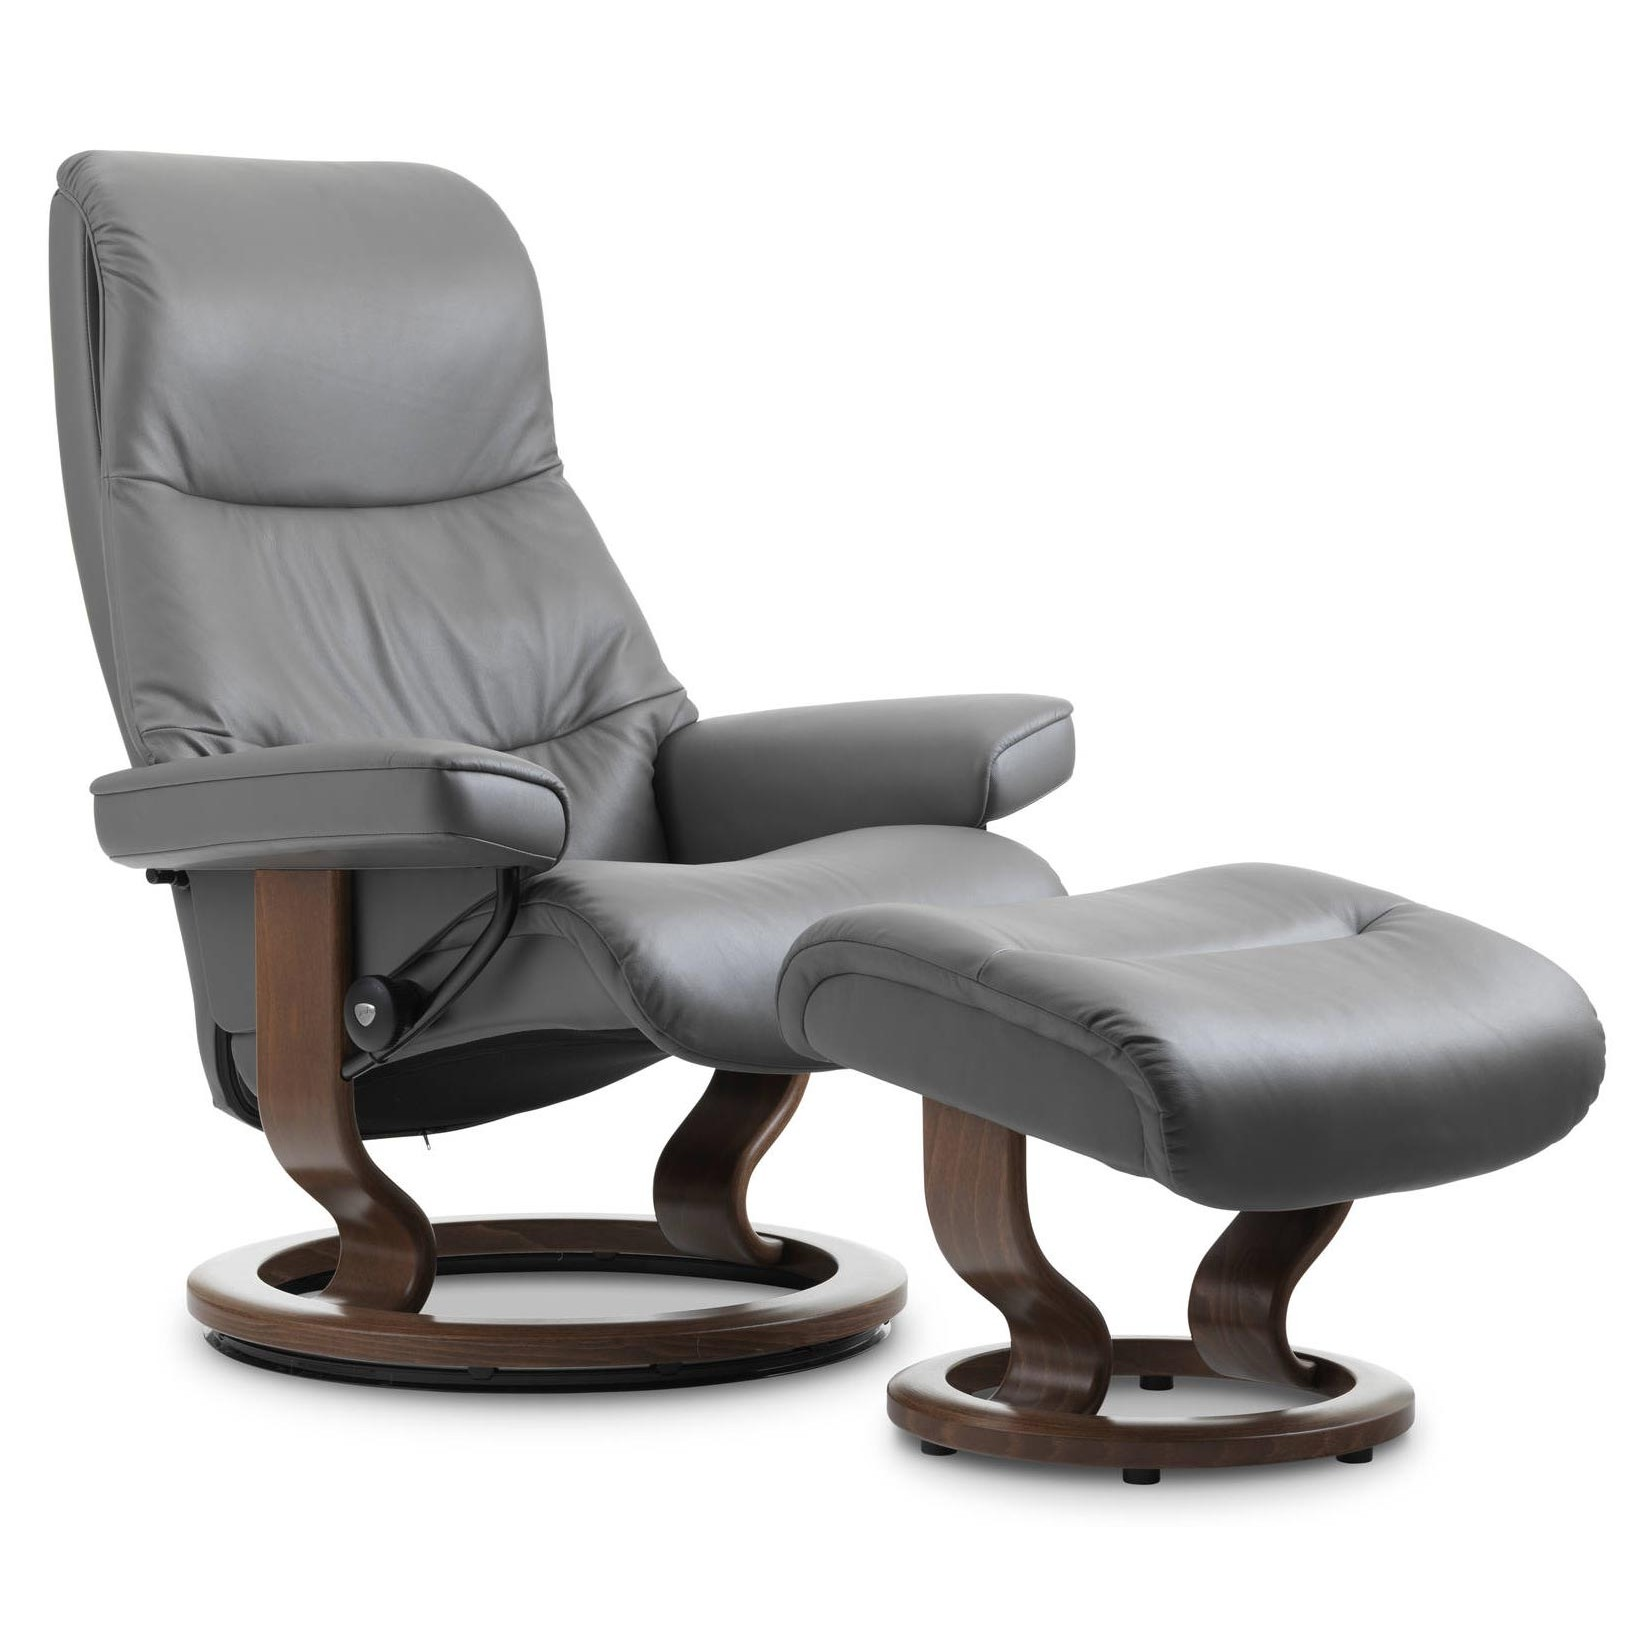 stressless chairs reviews what s a chair dip view classic recliner and ottoman from 3 195 00